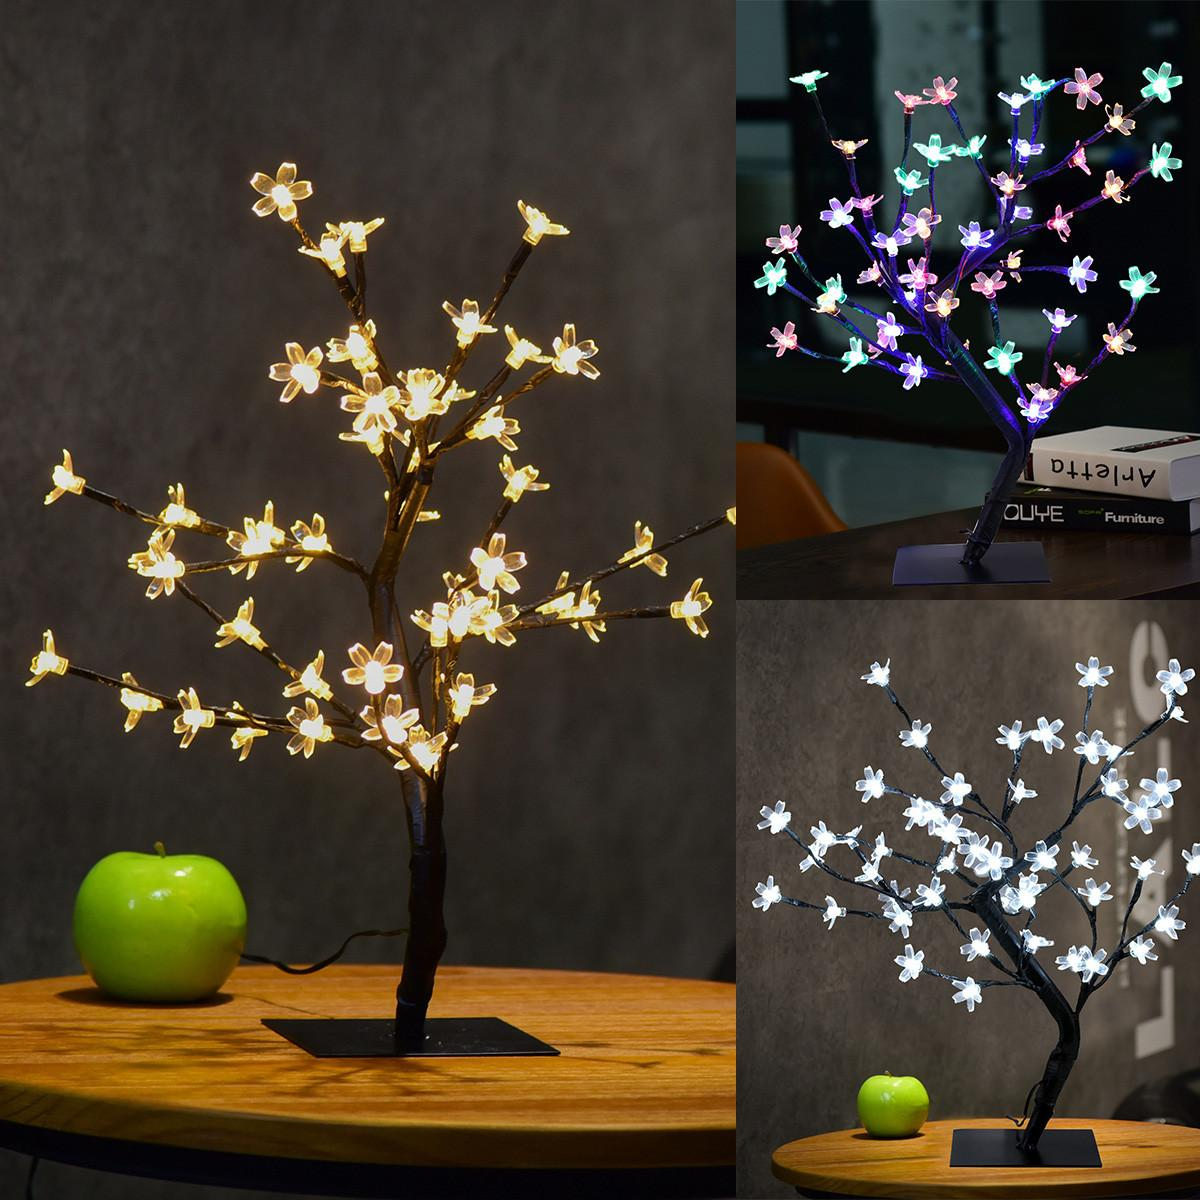 180led Warm White Christmas Decor Cherry Blossom Desk